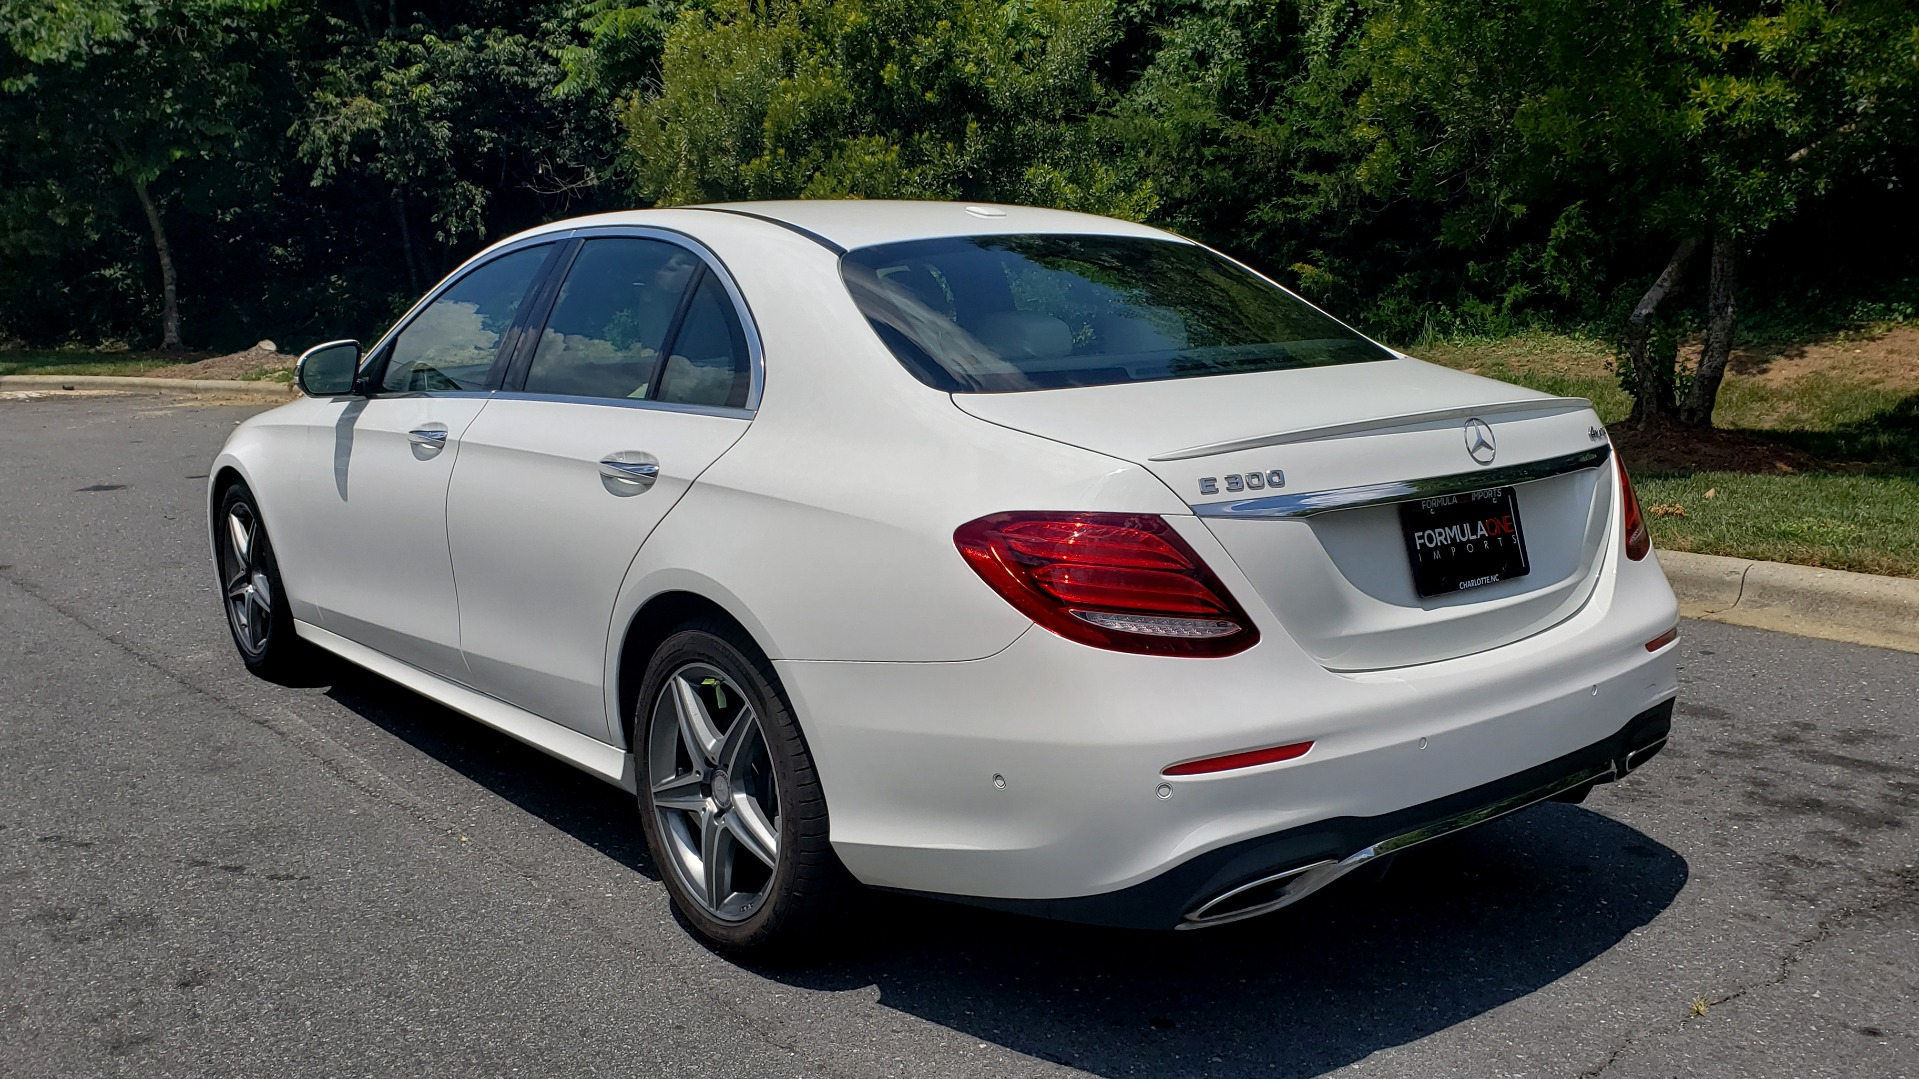 Used 2017 Mercedes-Benz E-CLASS E 300 PREMIUM / SPORT / NAV / SUNROOF / HTD STS / BSM / REARVIEW for sale $27,995 at Formula Imports in Charlotte NC 28227 3